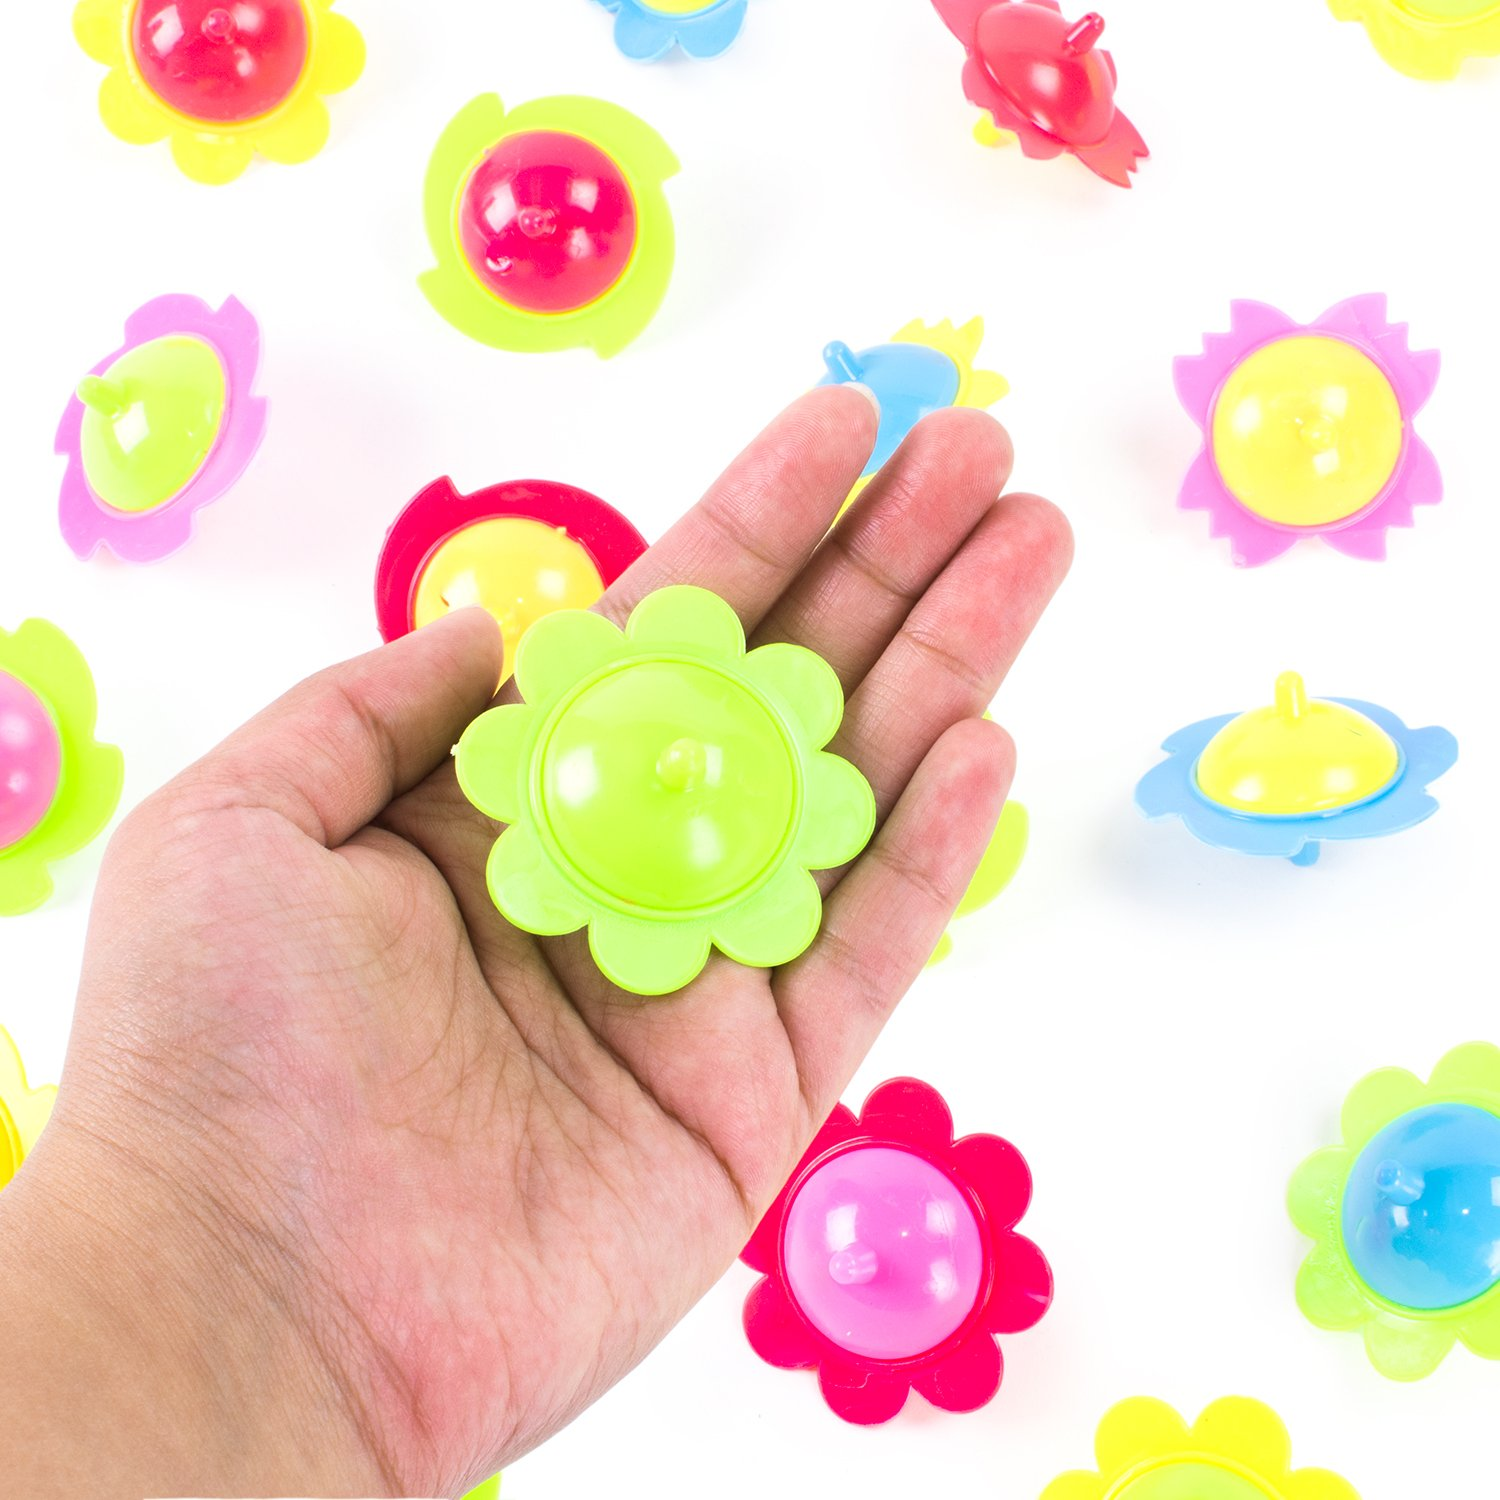 Mini Hand Finger Spinner Tops Twisting Plastic Flower Prize Toys for Children Birthday Party Favors (36 Pack) by Super Z Outlet